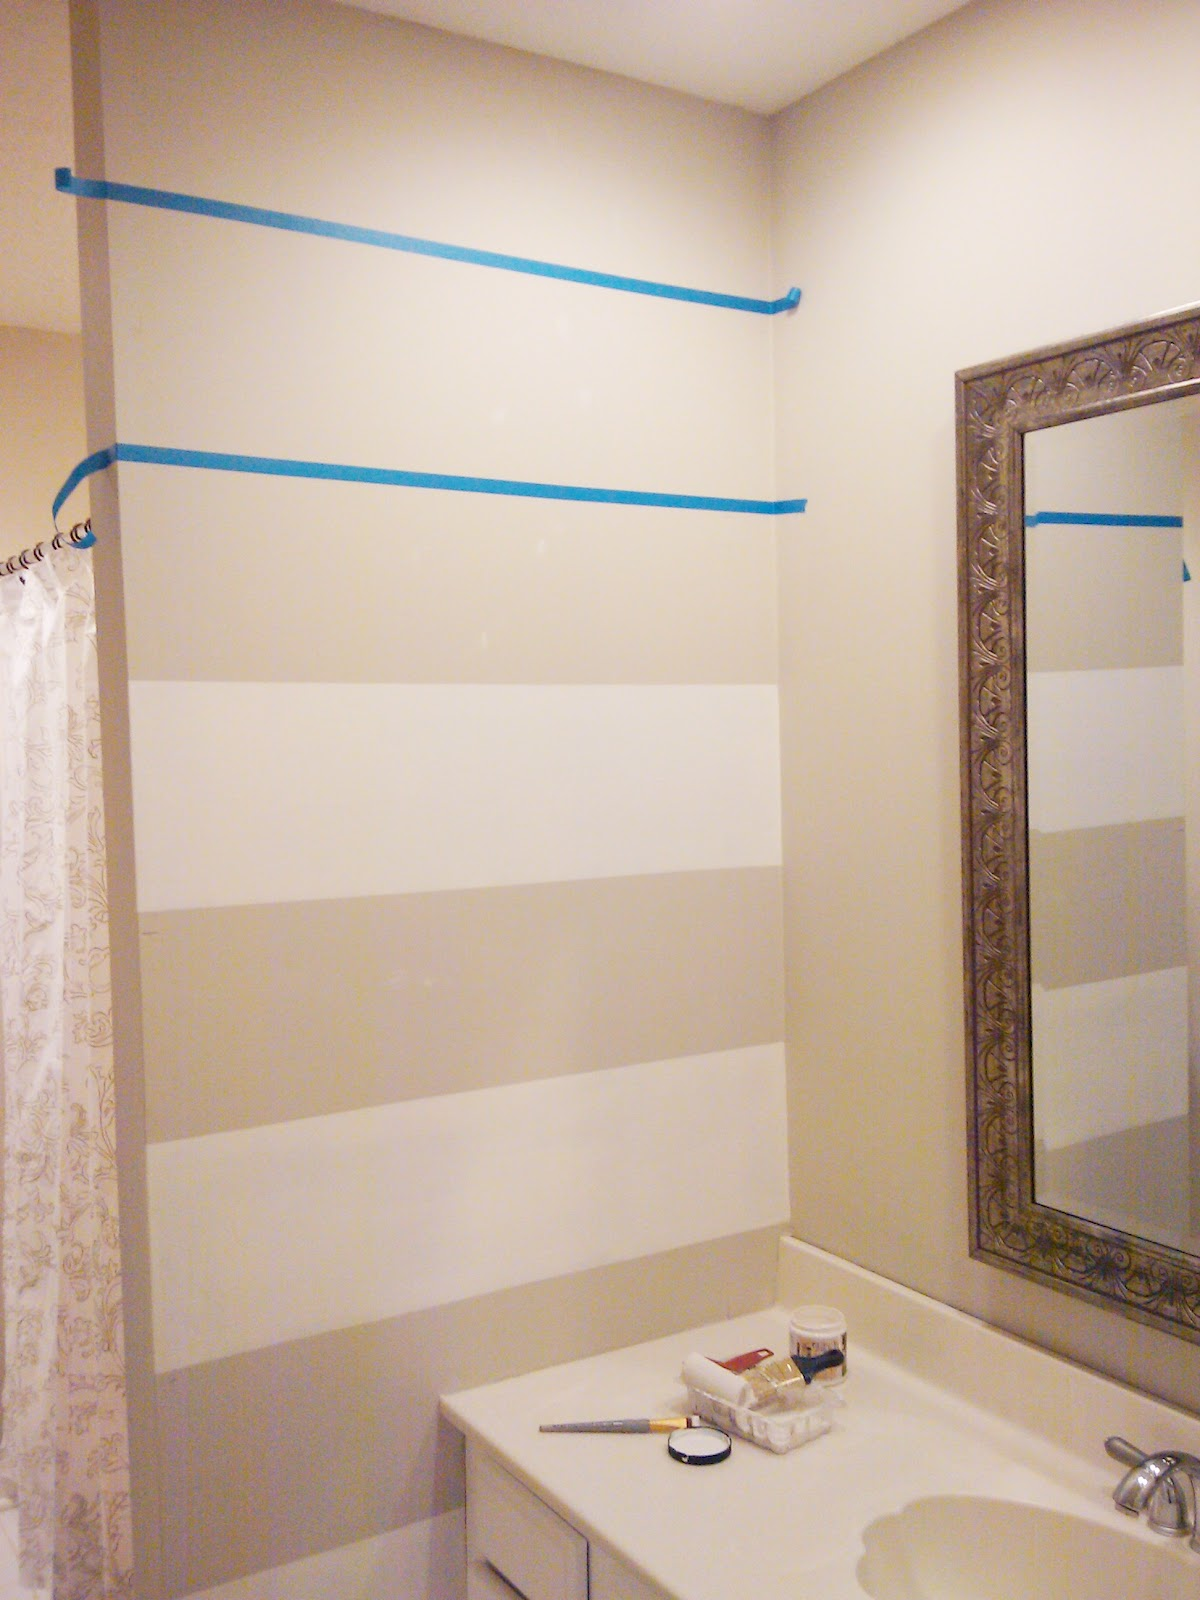 LiveLoveDIY: How To Paint Stripes: the easiest tutorial ever!